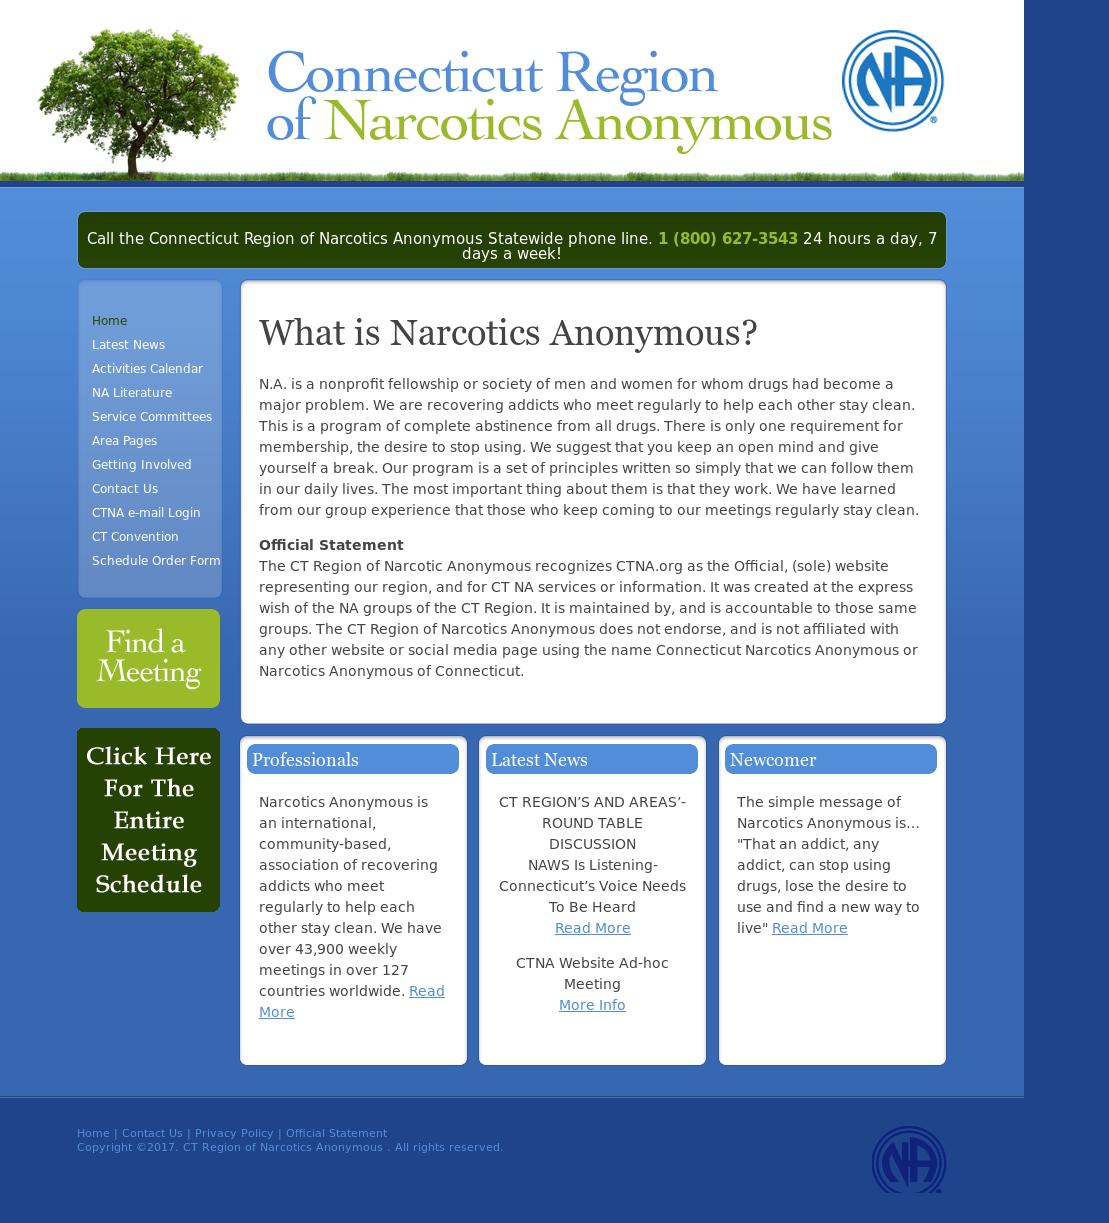 CT Region of Narcotics Anonymous Competitors, Revenue and